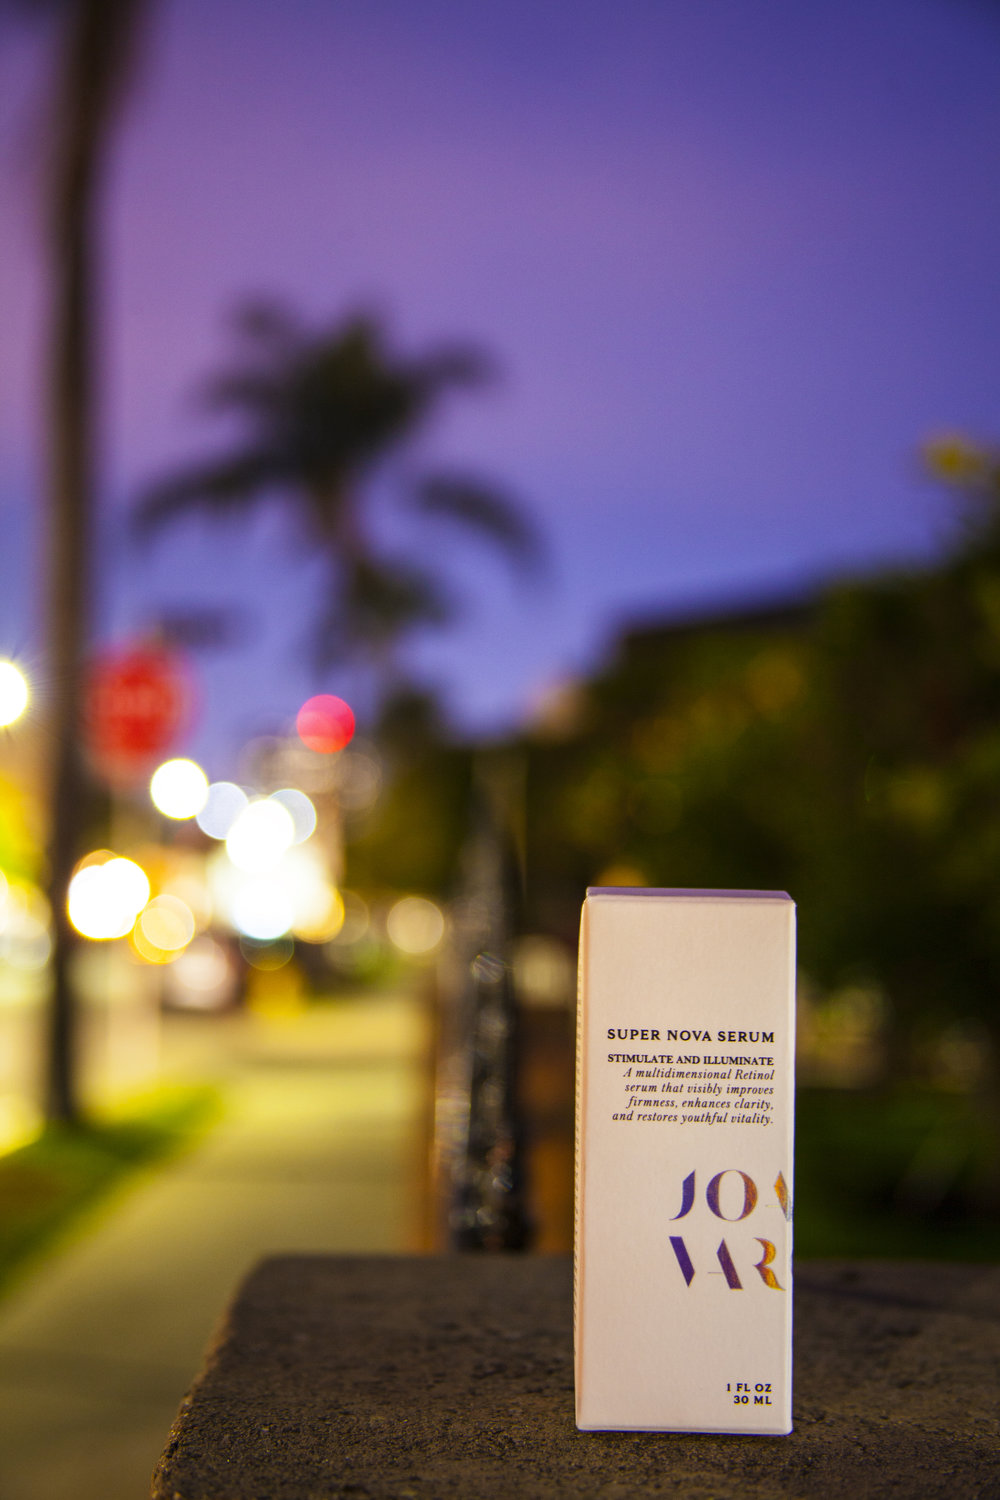 joanna-vargas-skincare-supernova-serum-super-nova-serum-super-nova-facial-west-hollywood-product-photography-celebrity-skincare-katrina-eugenia-photography74.jpg